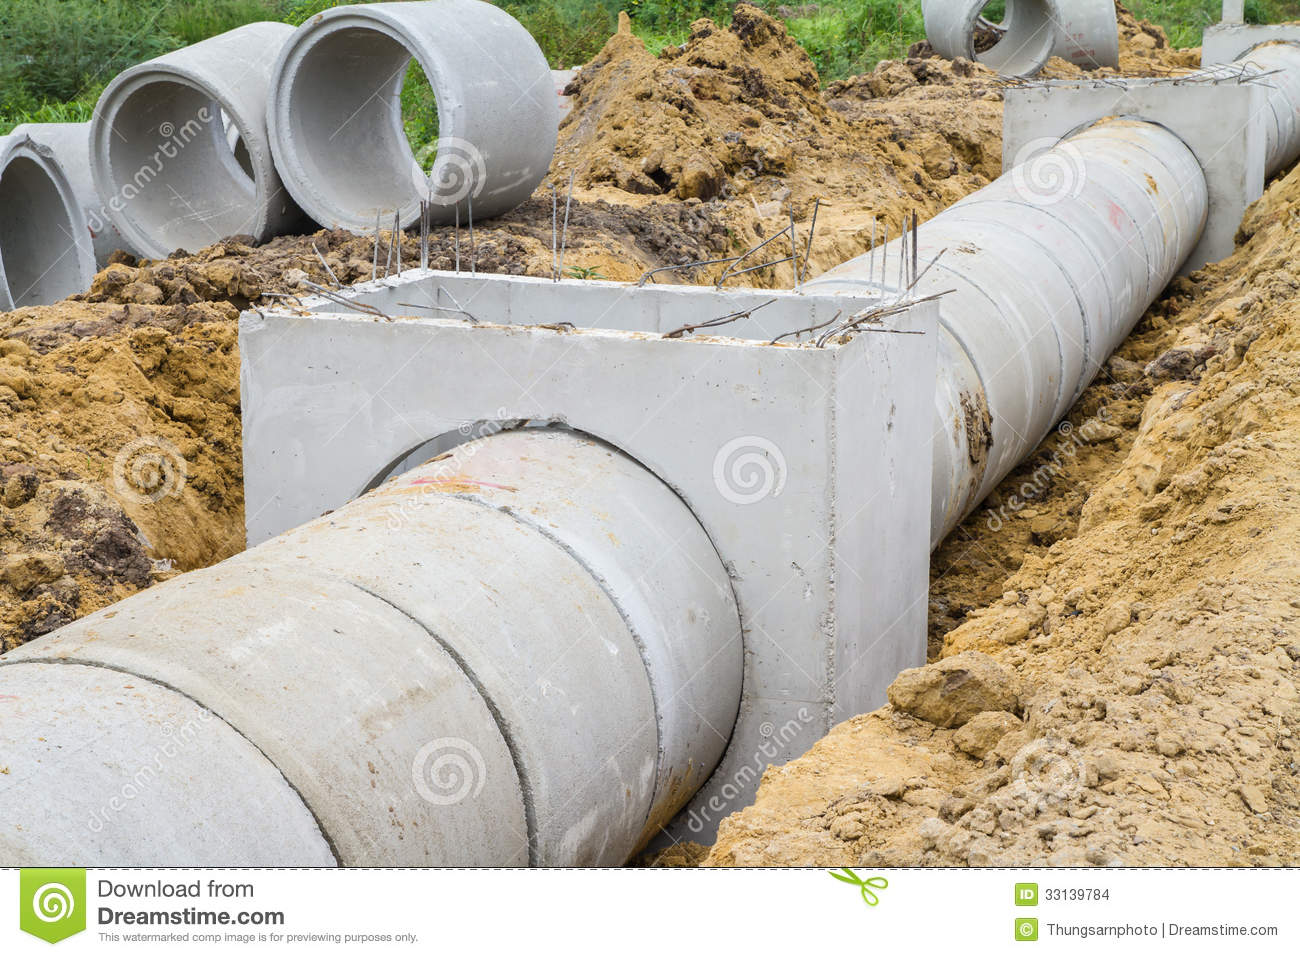 Cement Drain Pipe 24 : Concrete drainage pipe and manhole under construction